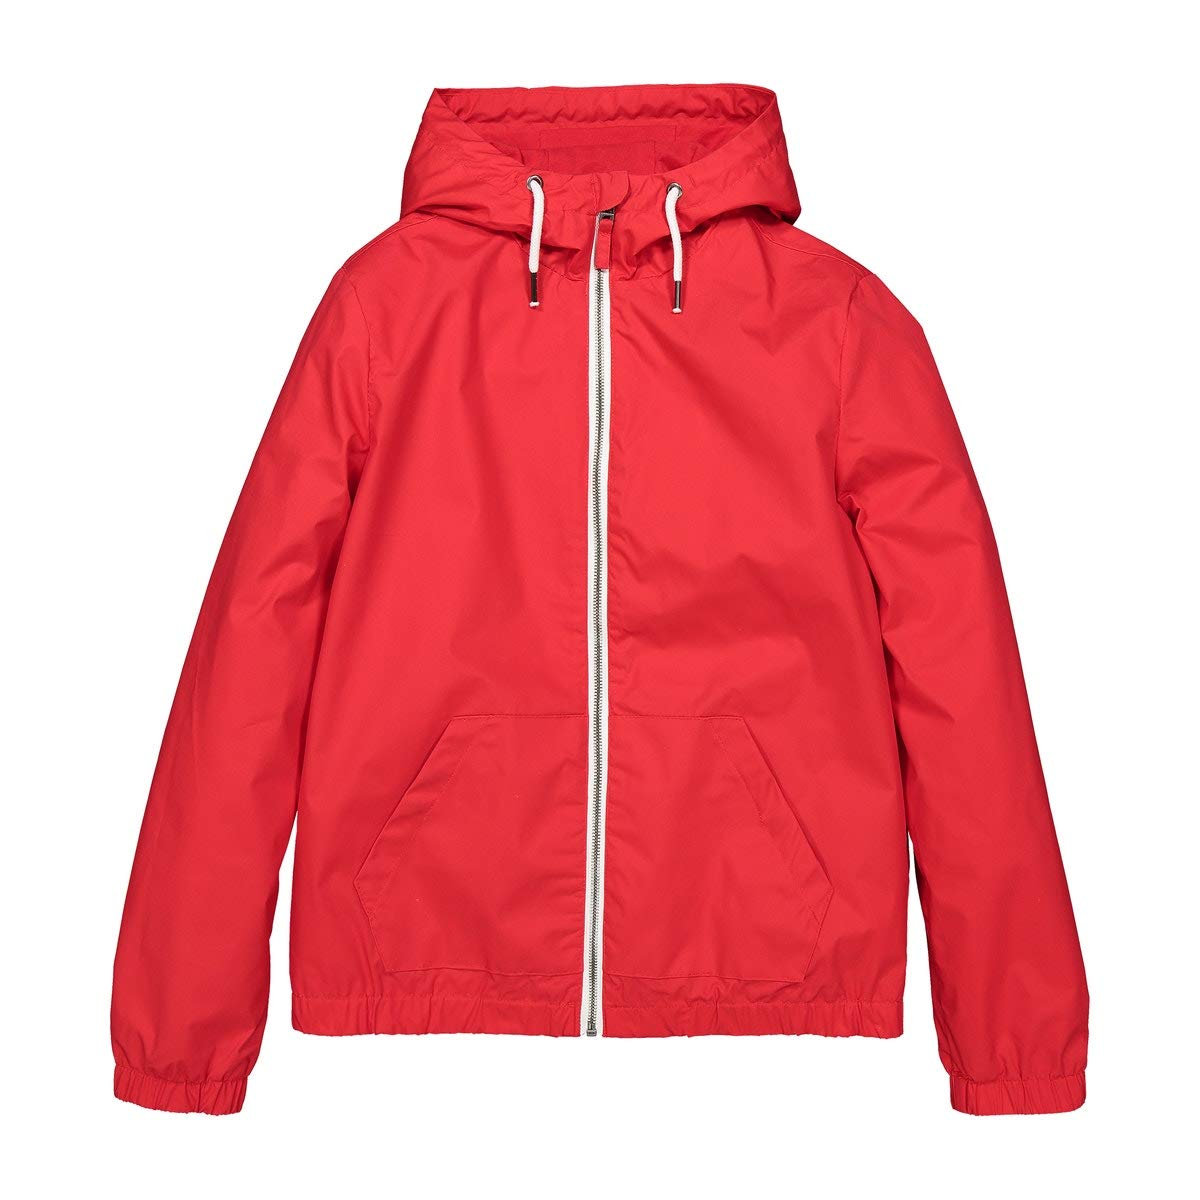 La Redoute Collections Waterproof Hooded Jacket, 10-16 Years Red Size 10 Years (138 cm)